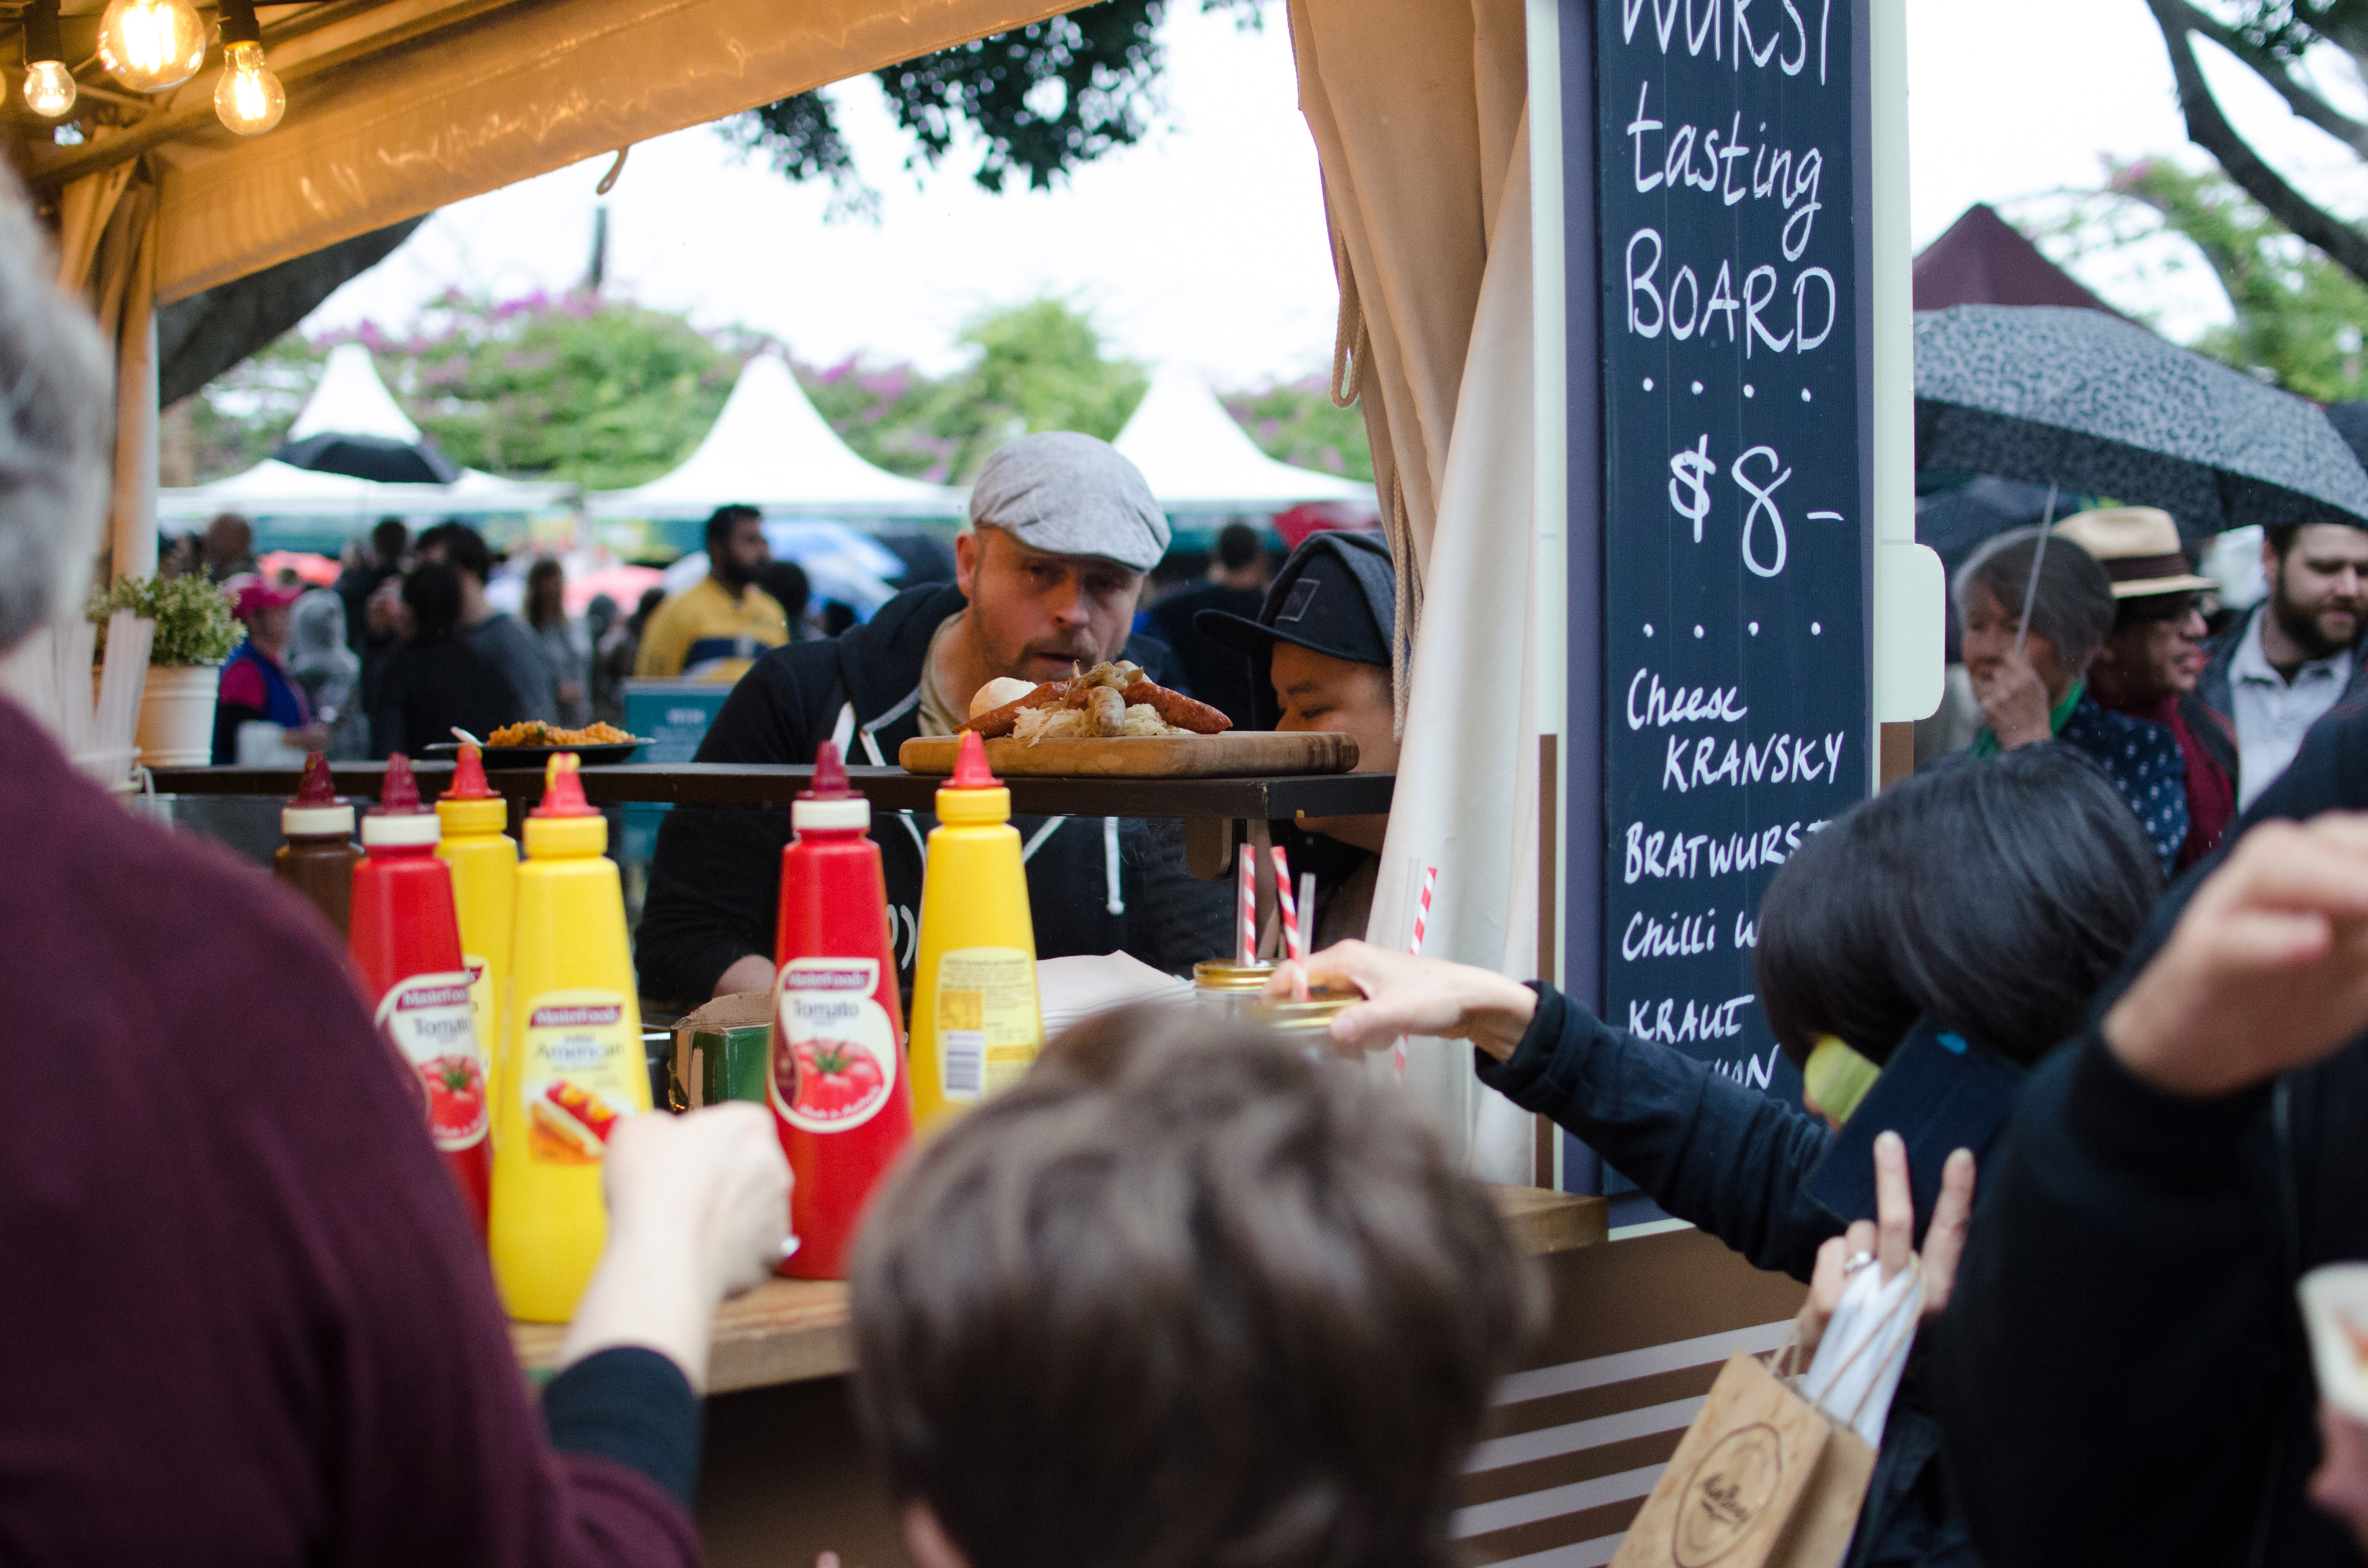 This German sausage stall boasted long lines all weekend